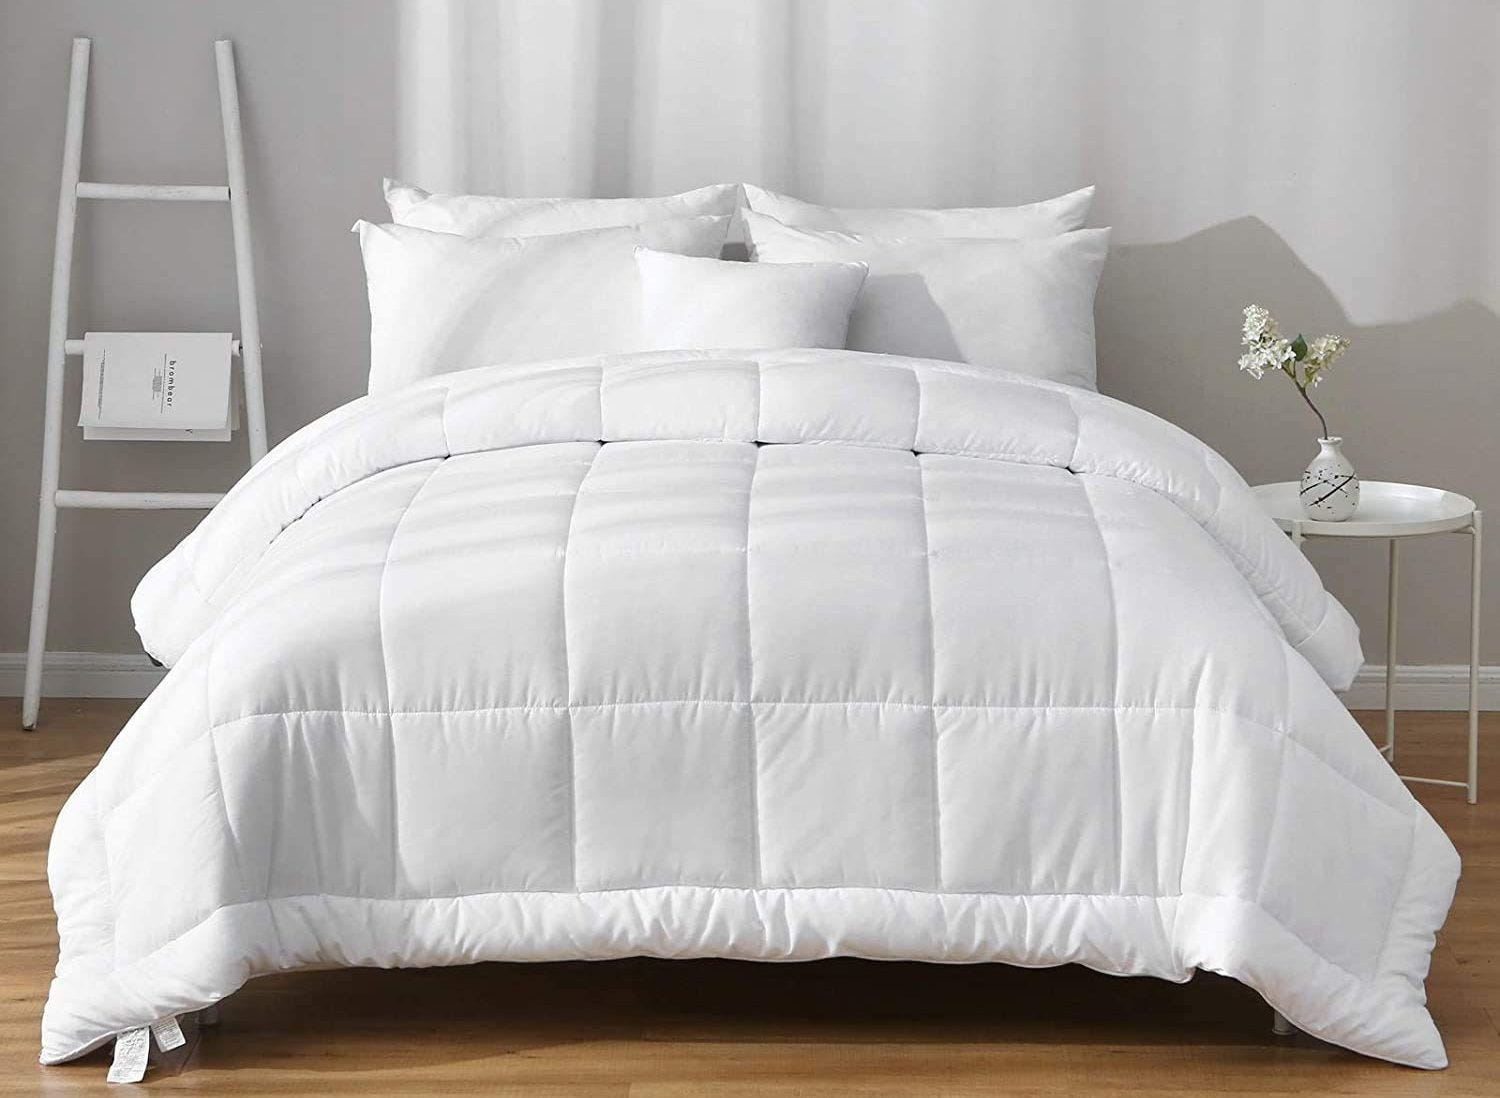 White quilted comforter on a bed.